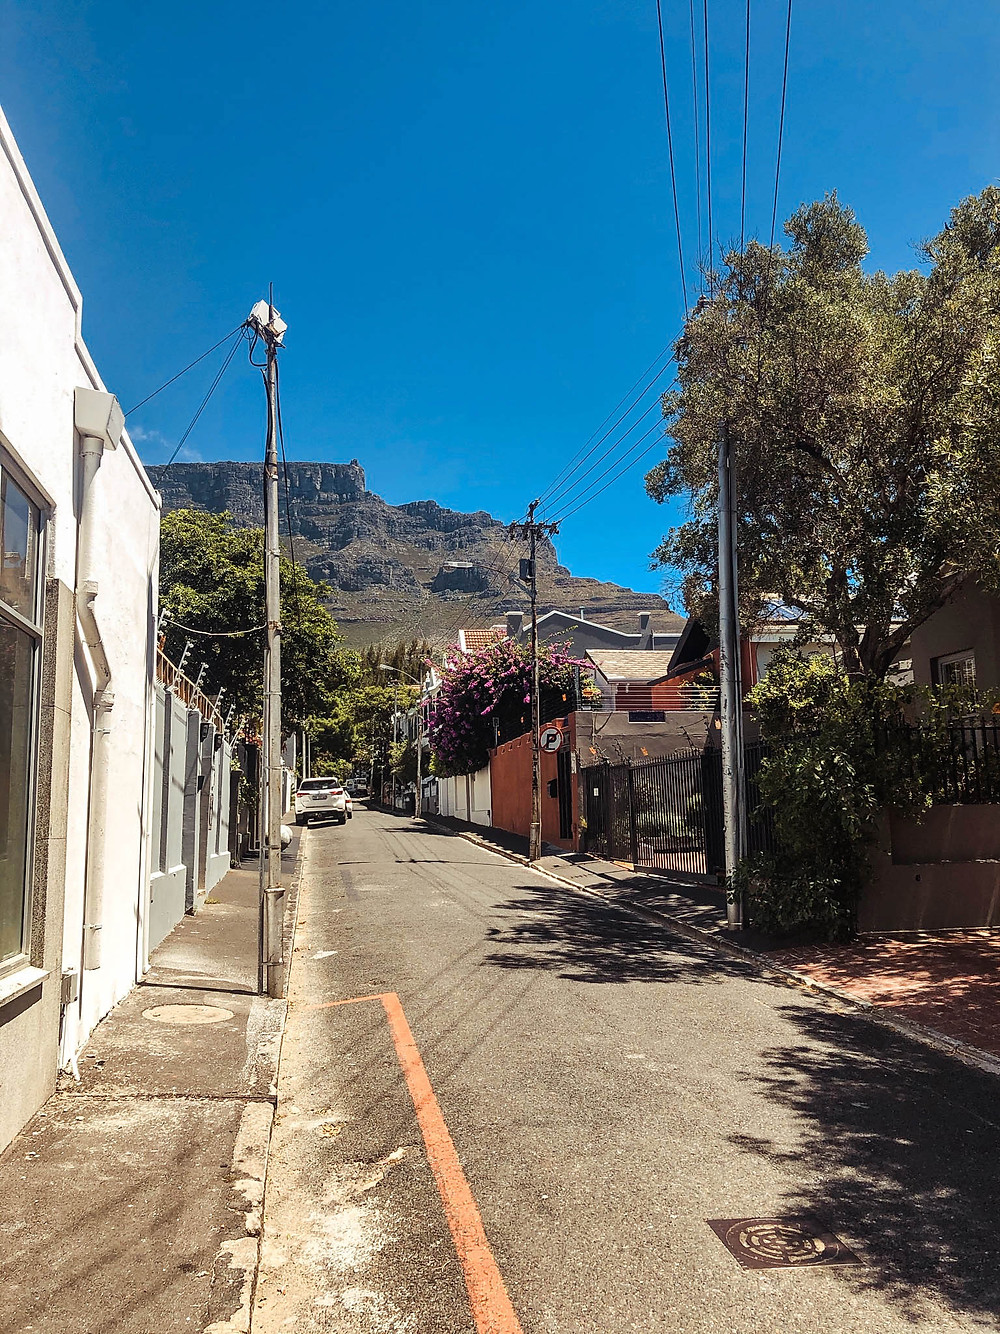 The Table Mountain view leaving Craft+Graft